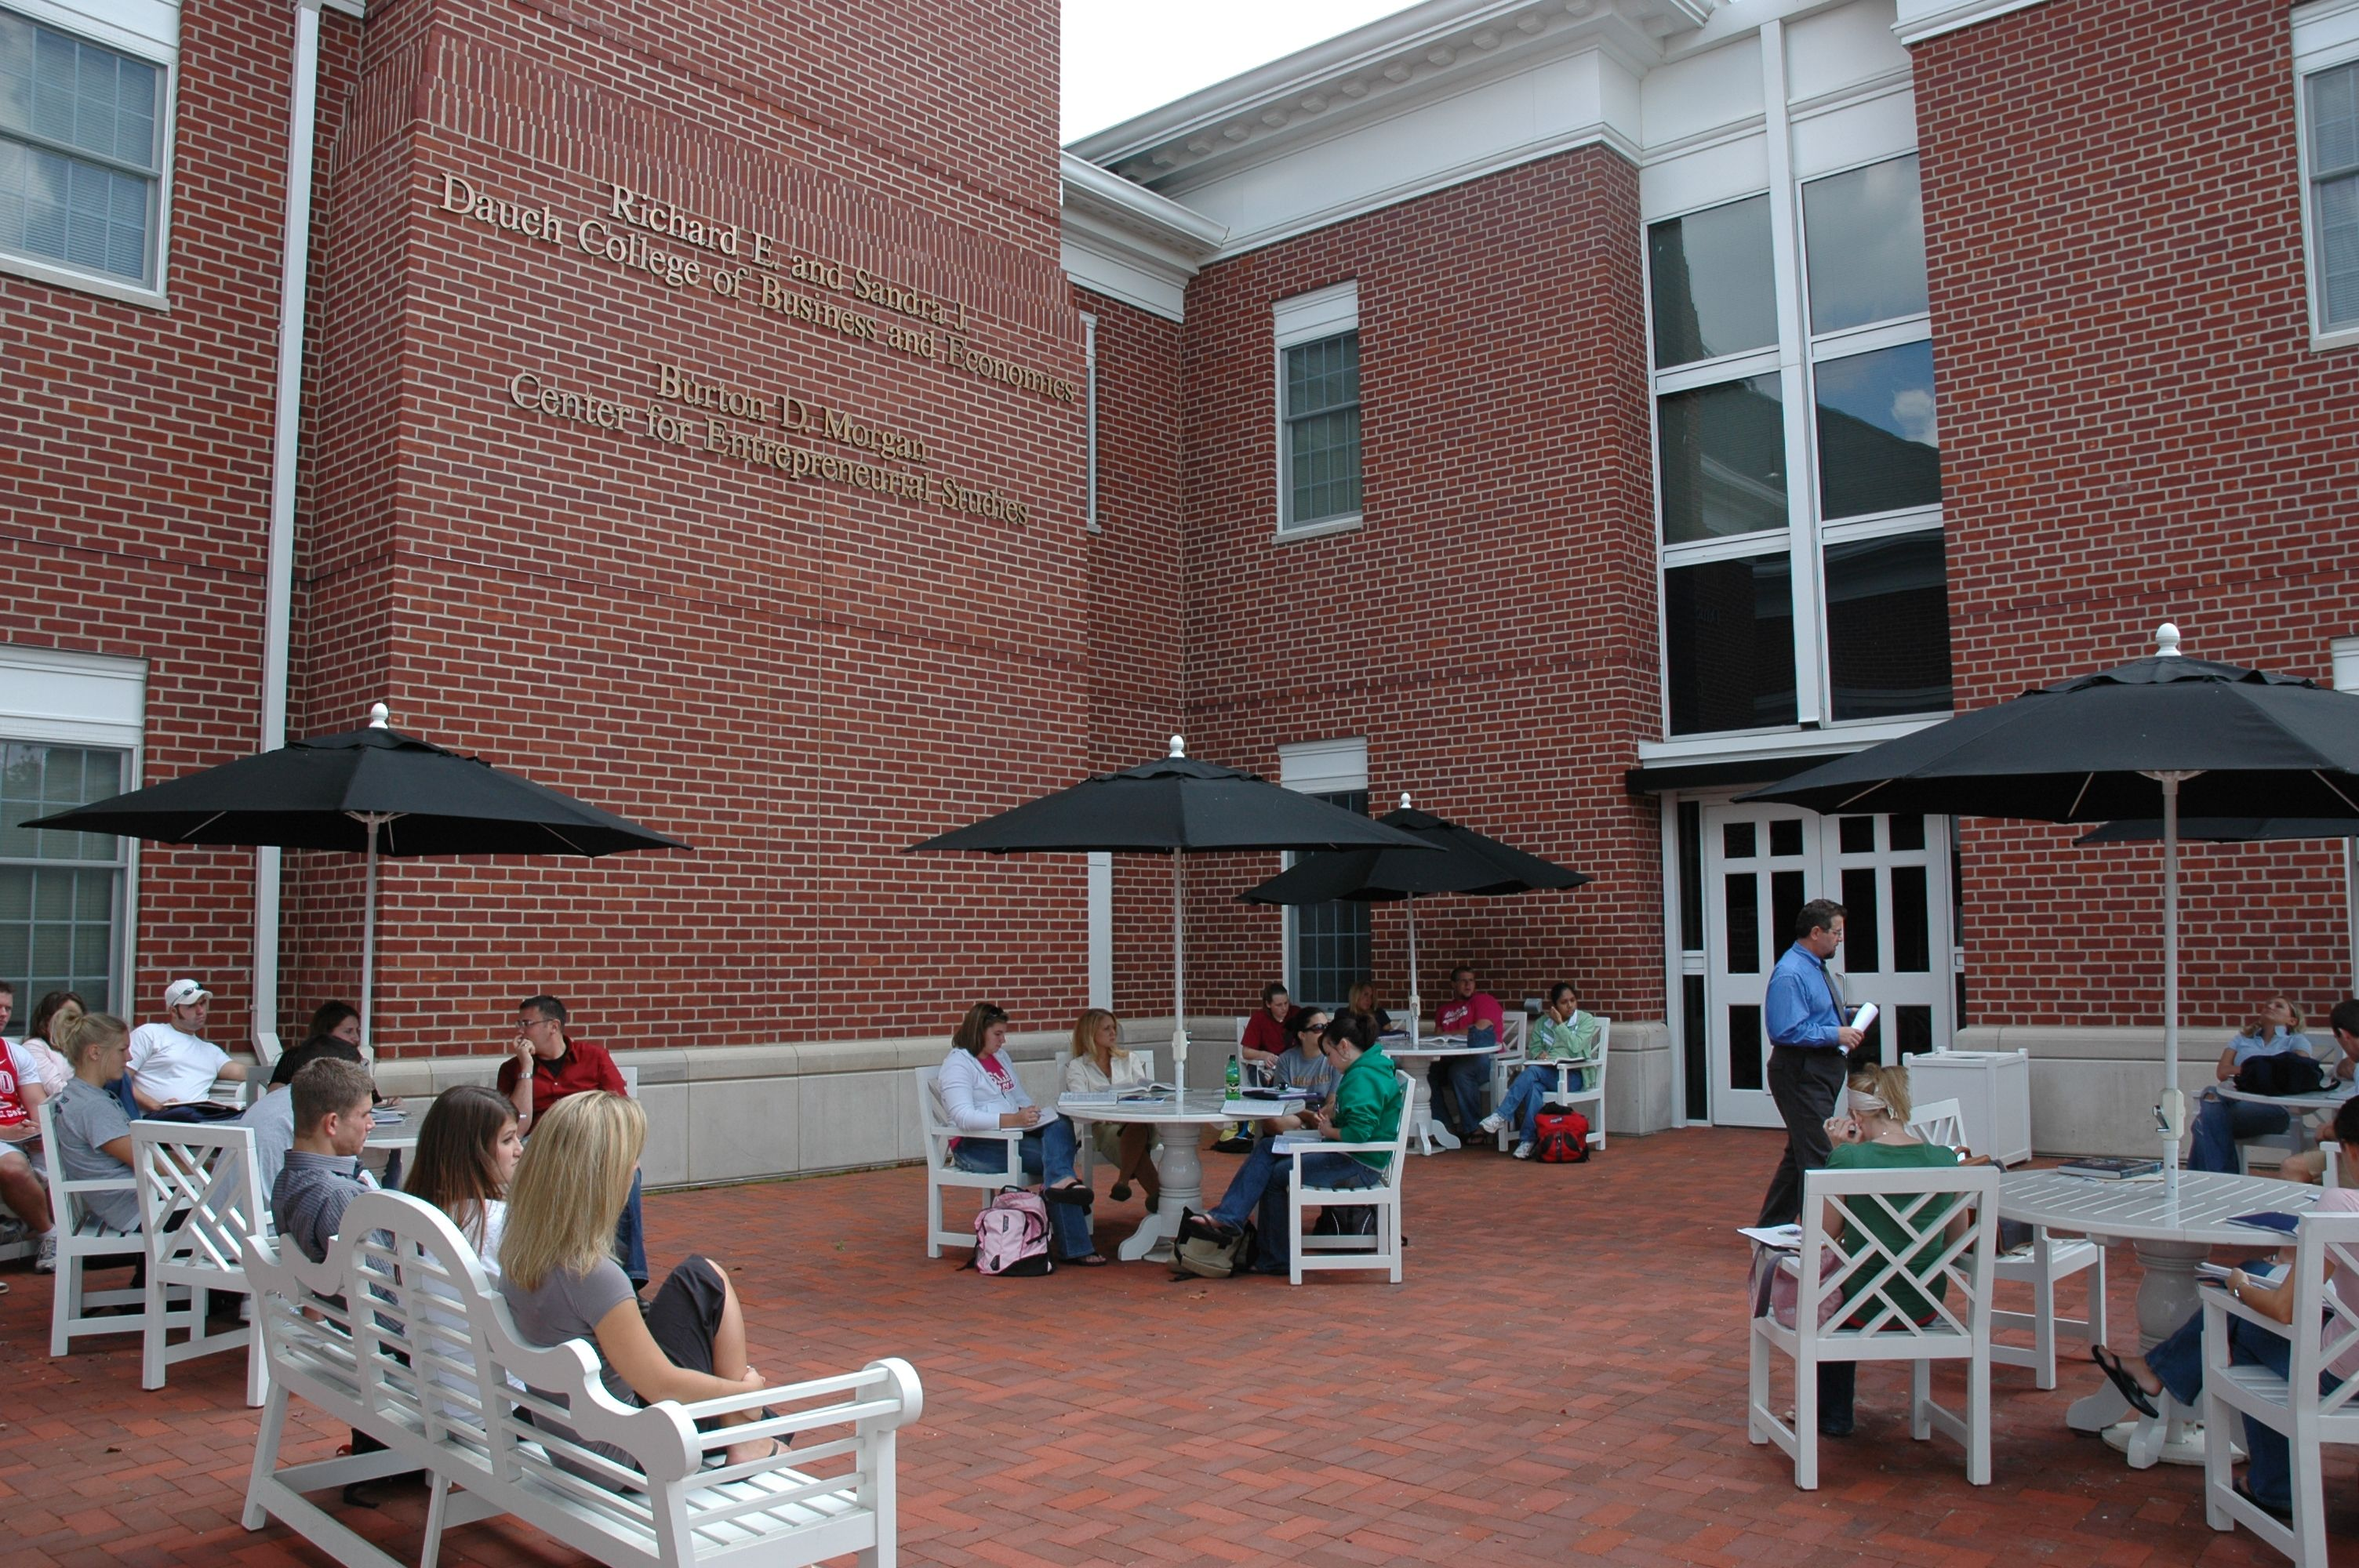 Dauch College of Business and Economics has a beautiful patio!